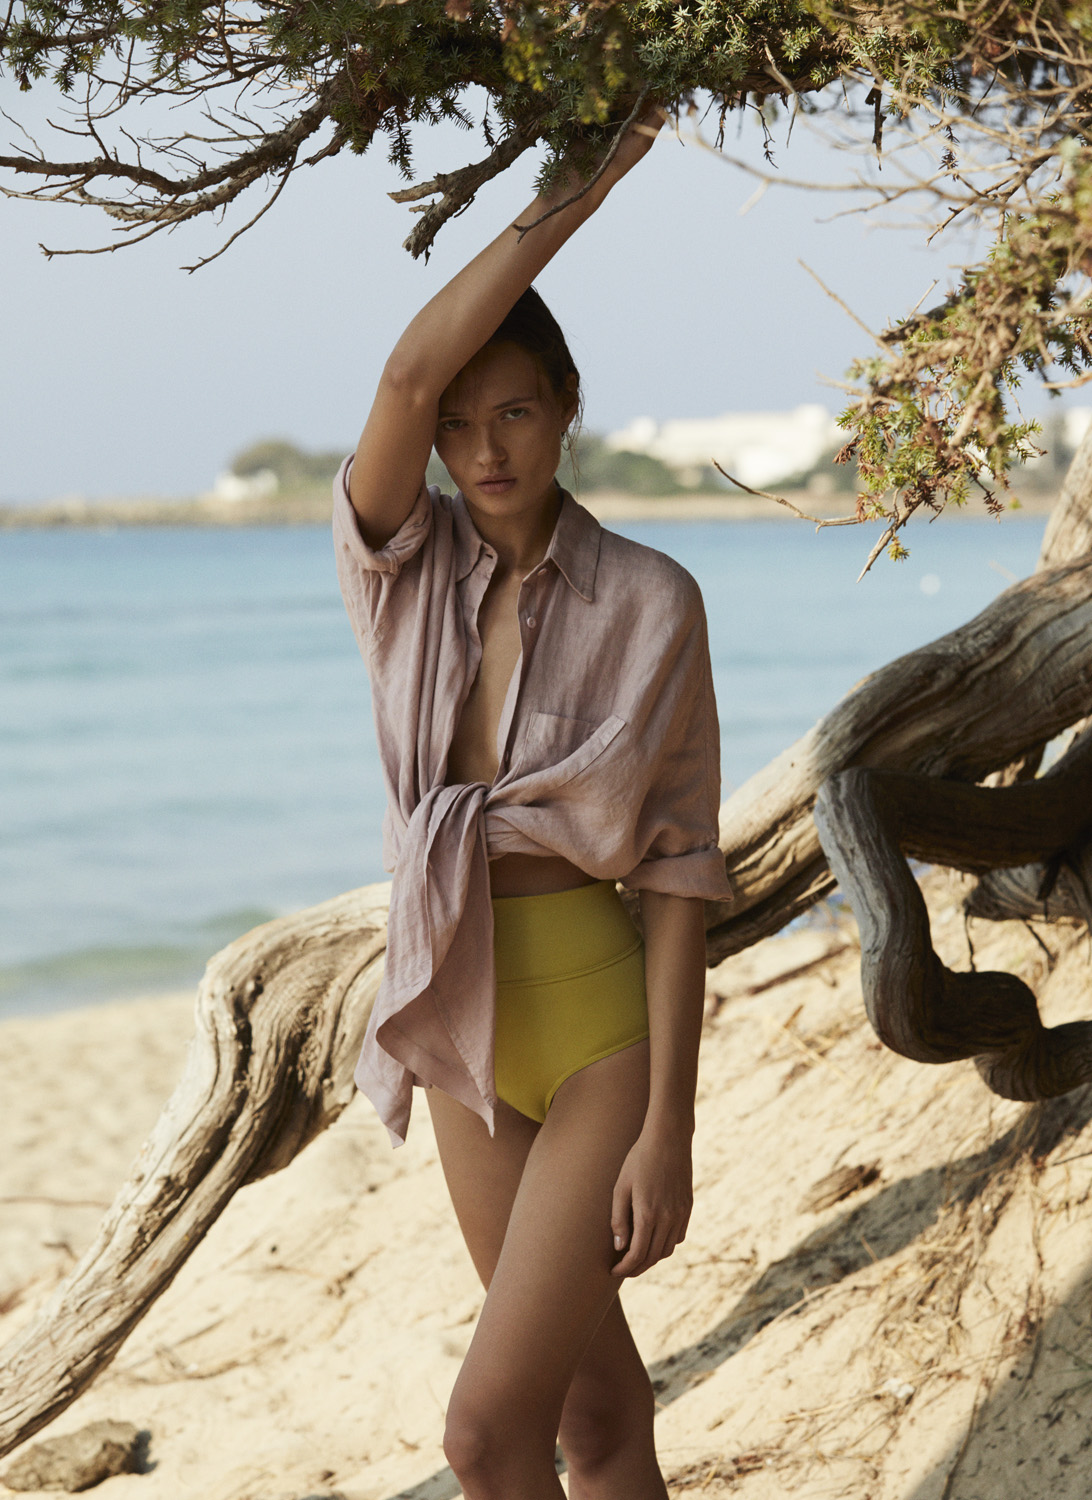 6. kép: Max Mara Beach Wear